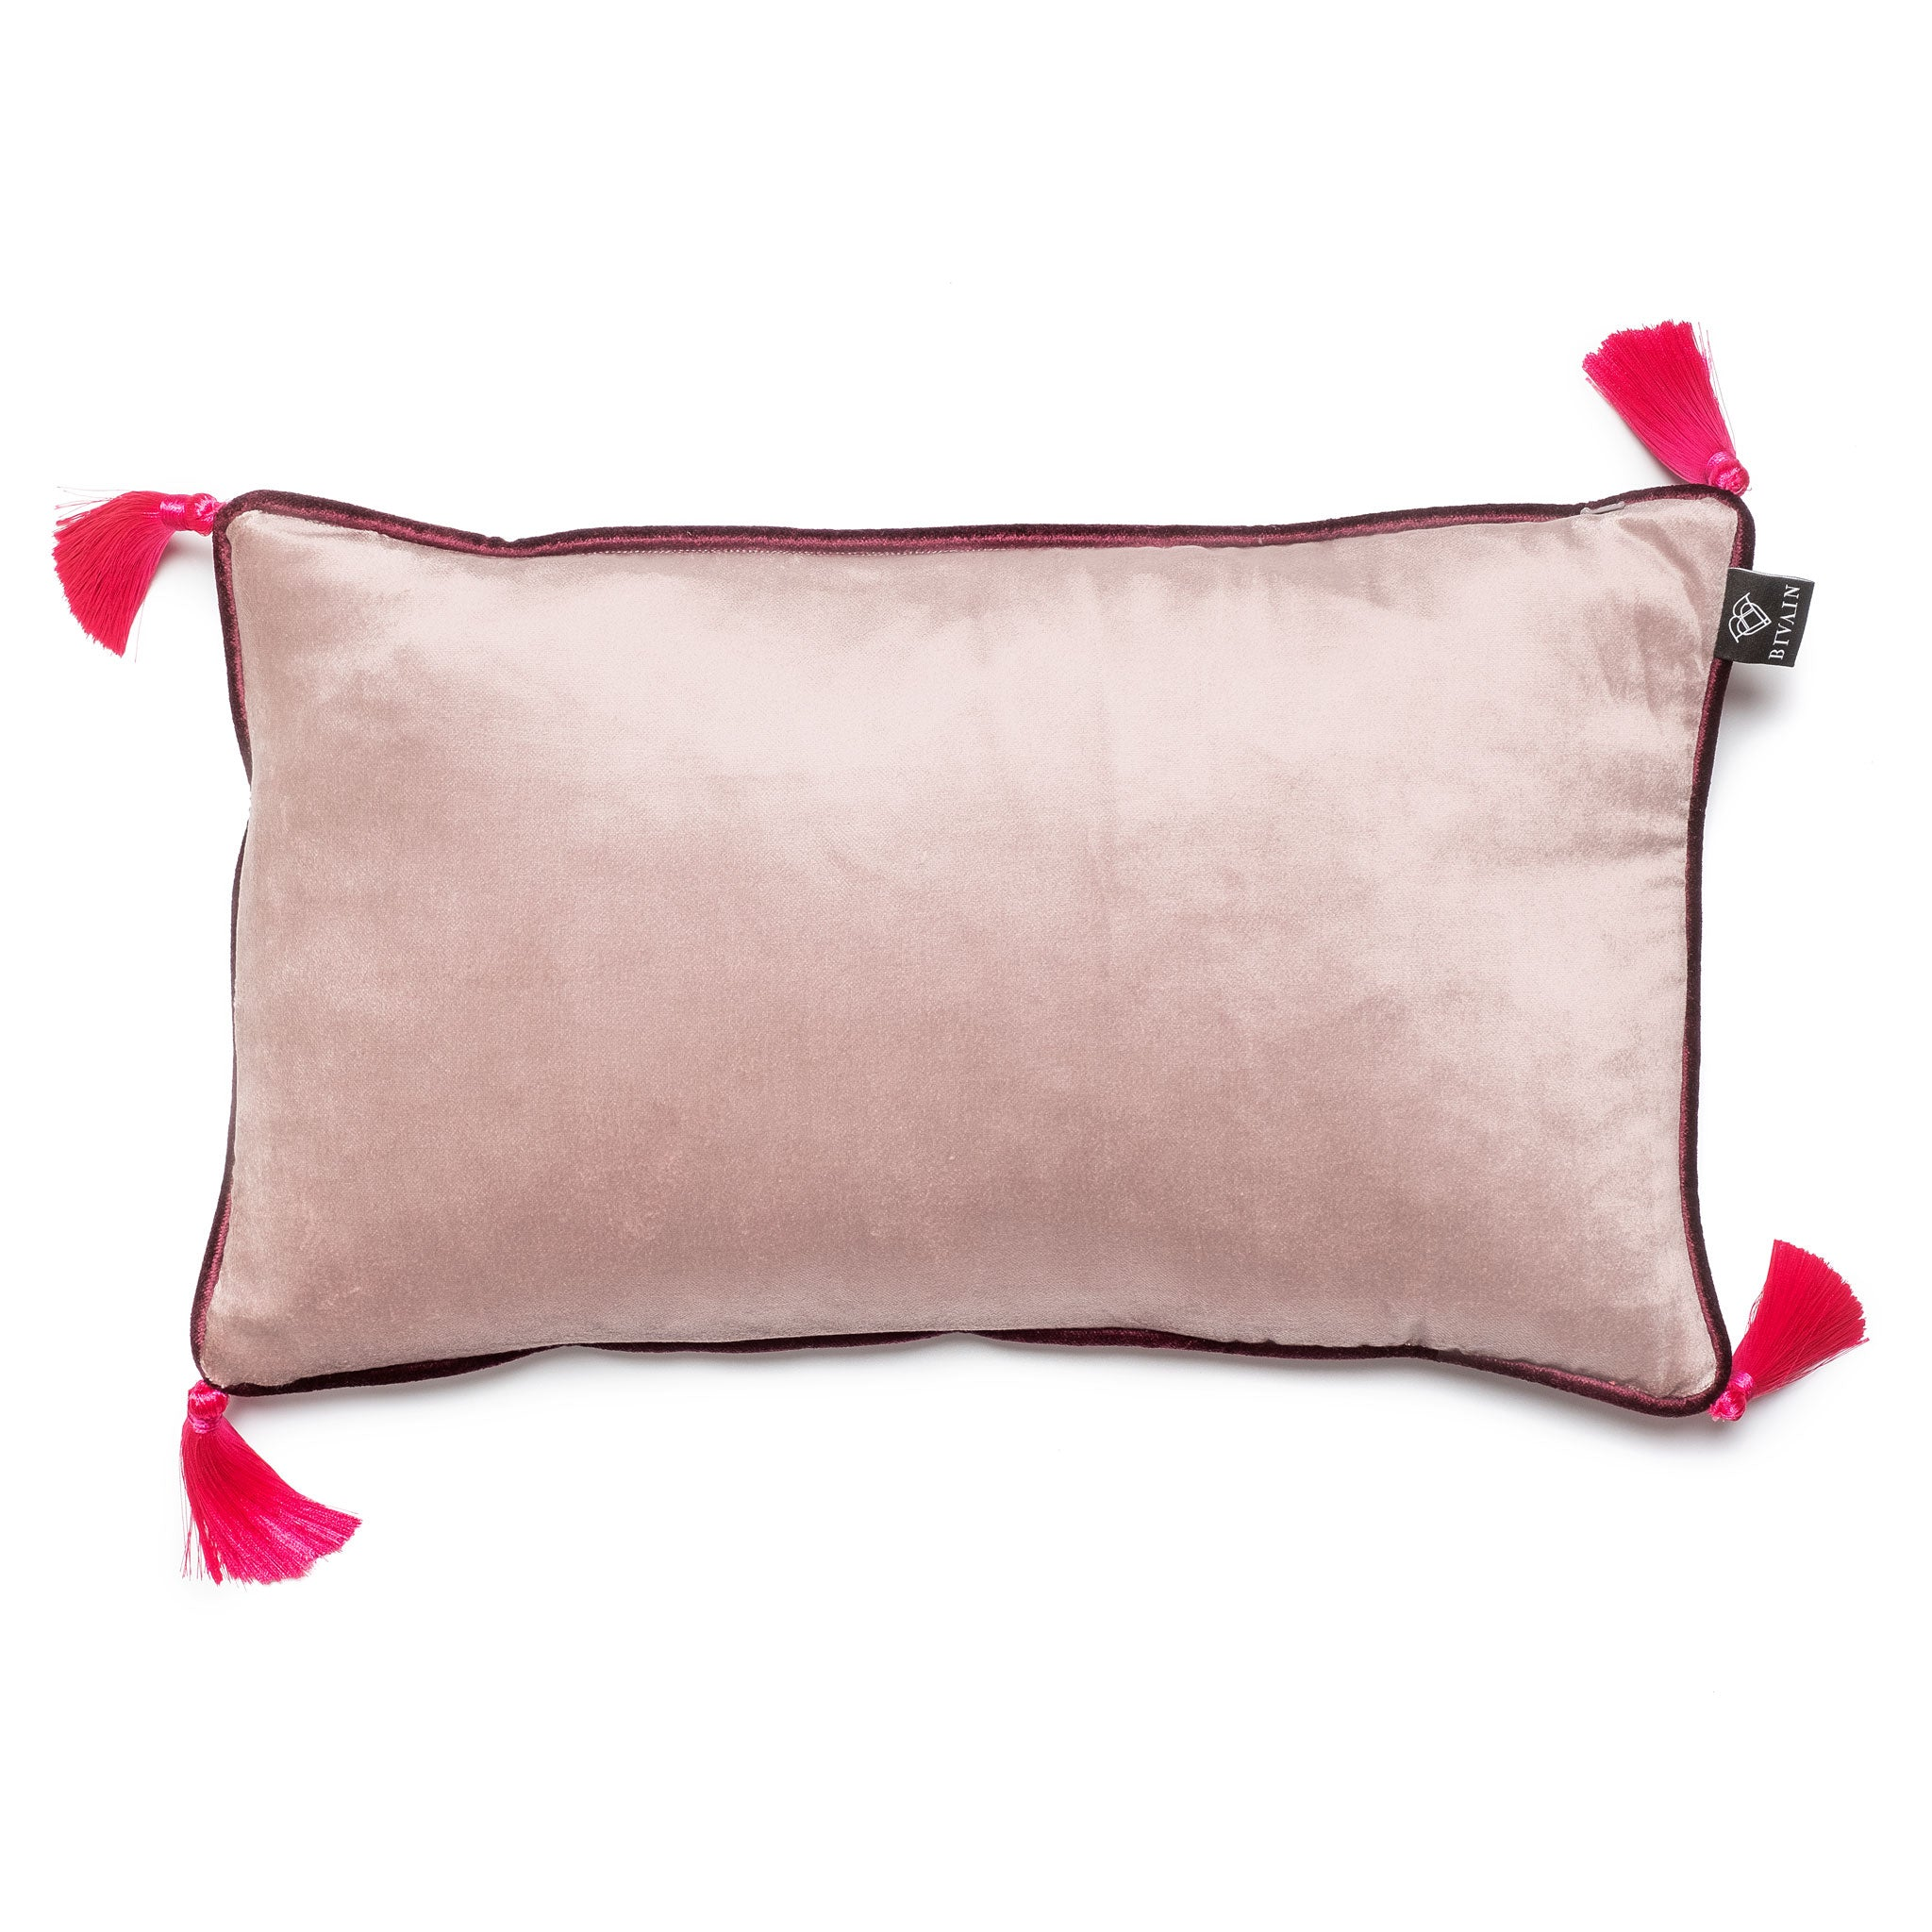 Silver Velvet Rectangular Cushion with Pink Tassels